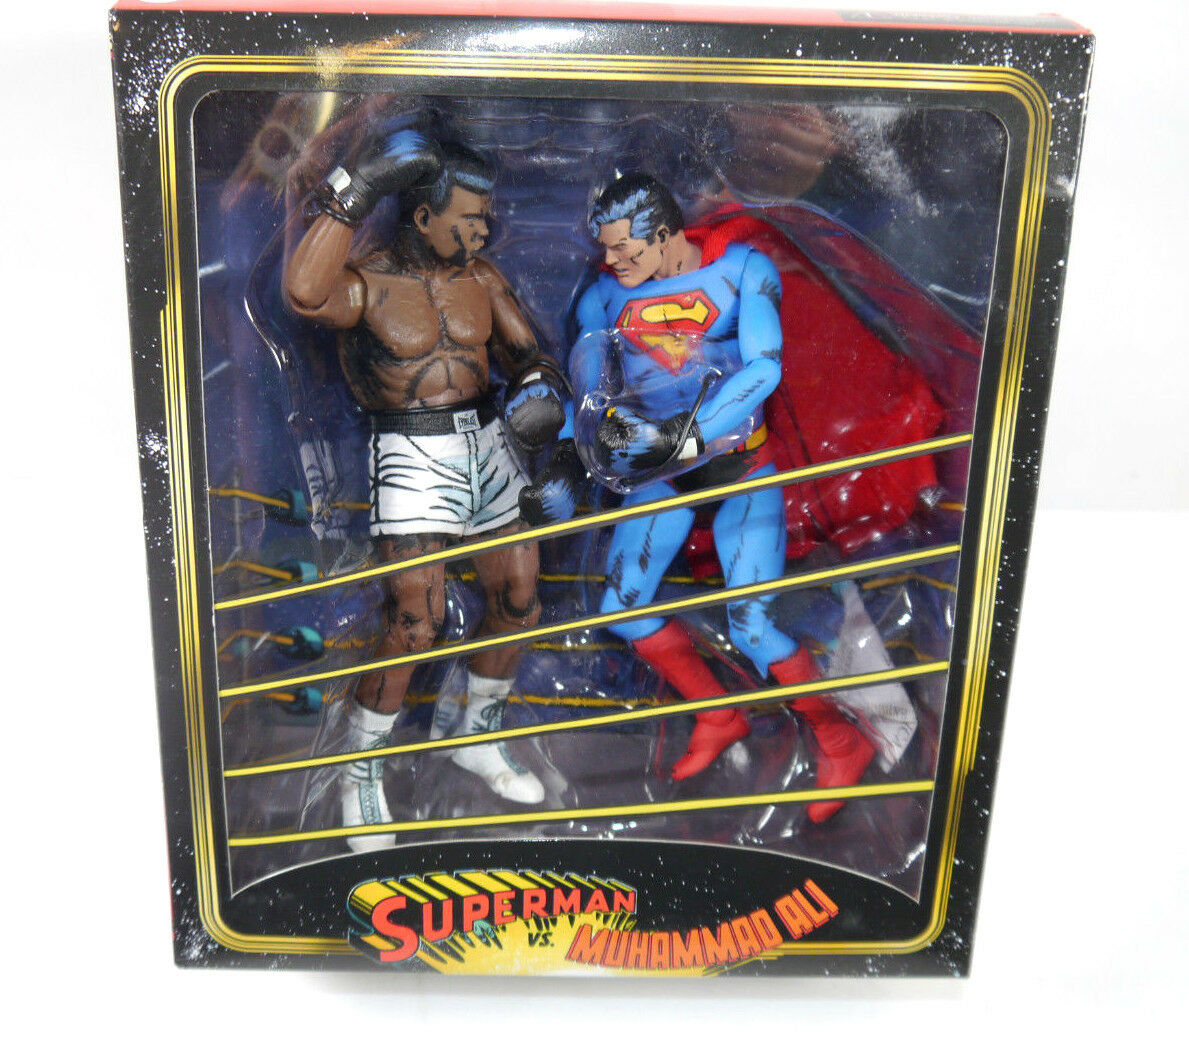 Superman Vs.Muhammad Ali Actionfigur Set Neca Nuovo (L) (L) (L) 39f638